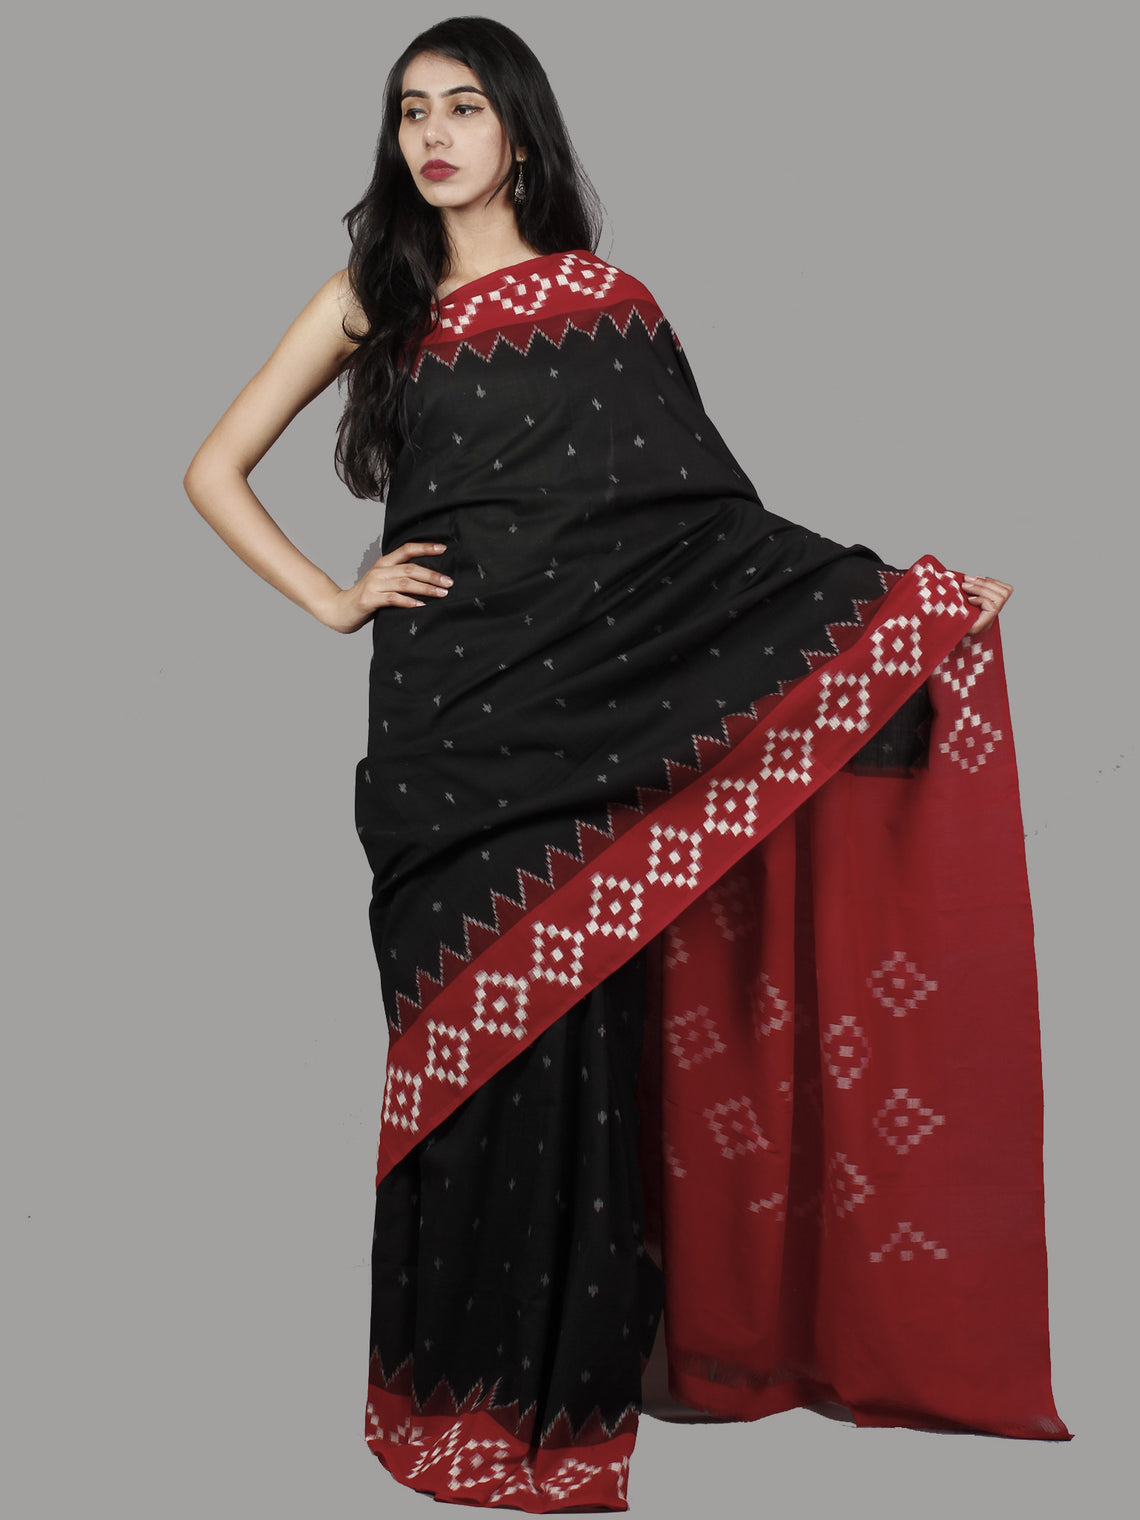 Black Red Maroon Ivory Grey Ikat Handwoven Pochampally Mercerized Cotton Saree - S031701438